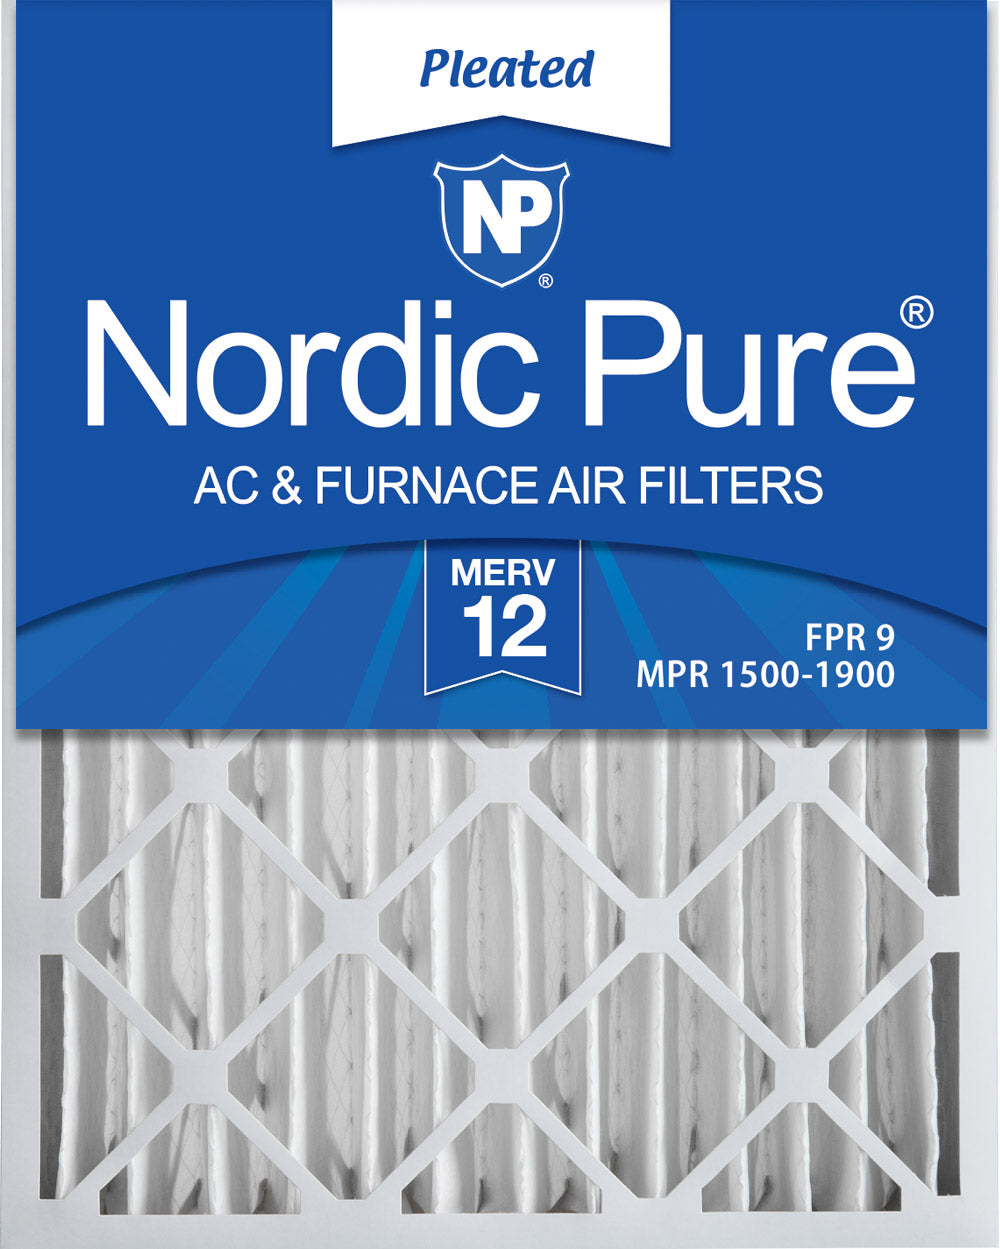 16x25x4 (3 5/8) Pleated MERV 12 Air Filters 1 Pack